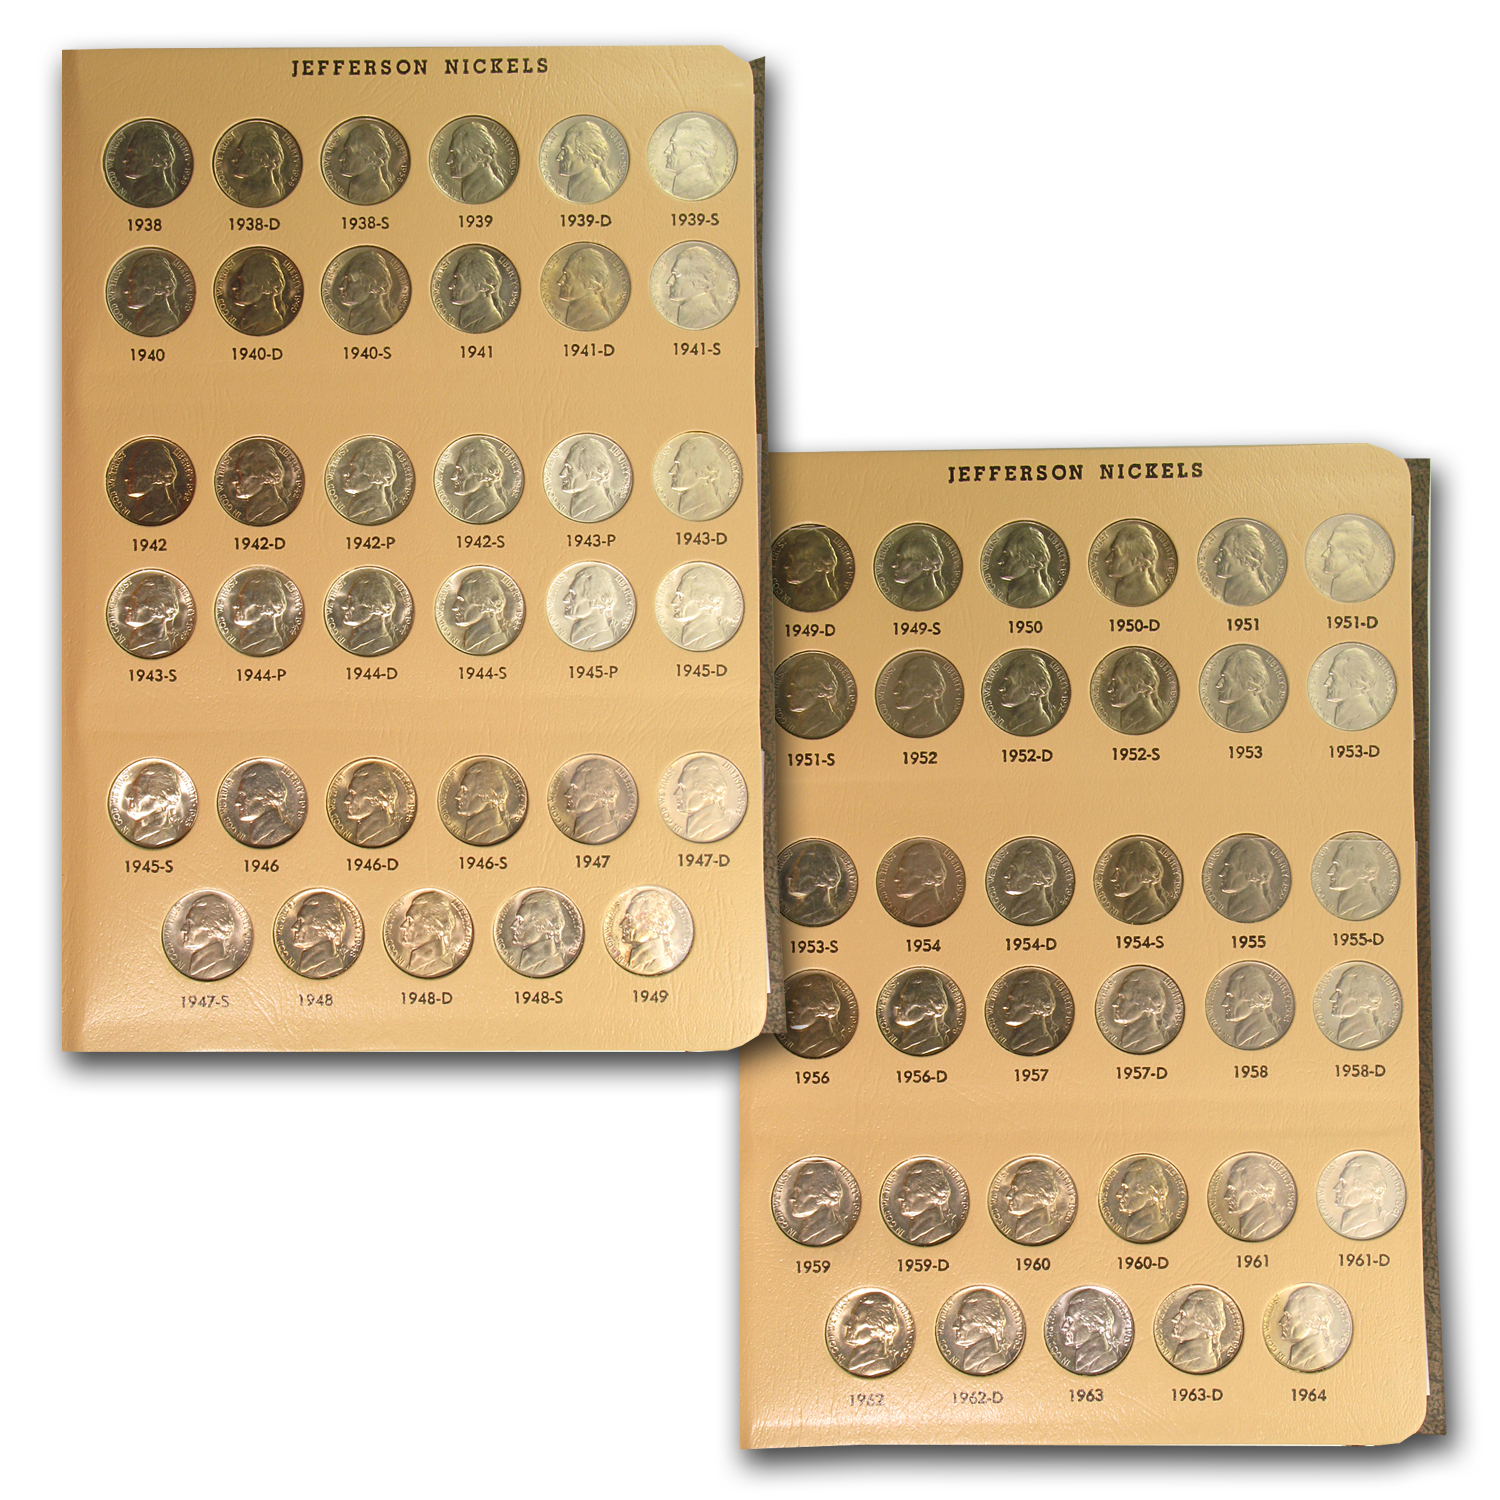 1938-2005 Jefferson Nickel Set in Album - BU & Proof 192 Coins!